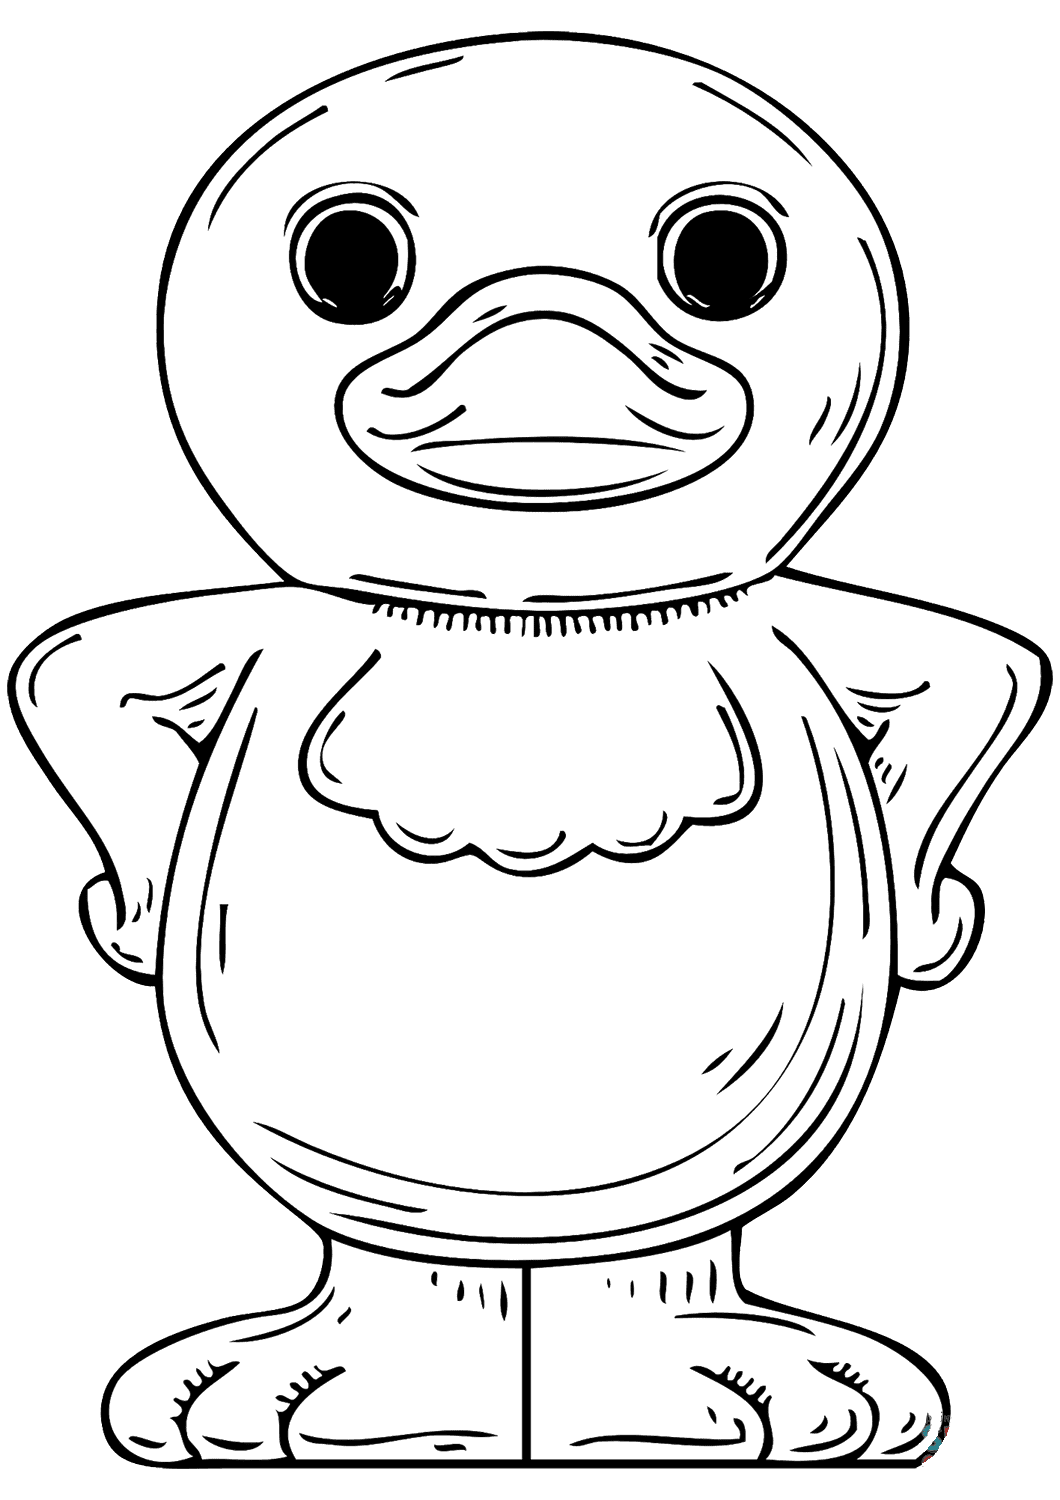 Funny cartoon duckling wears bib Coloring Pages